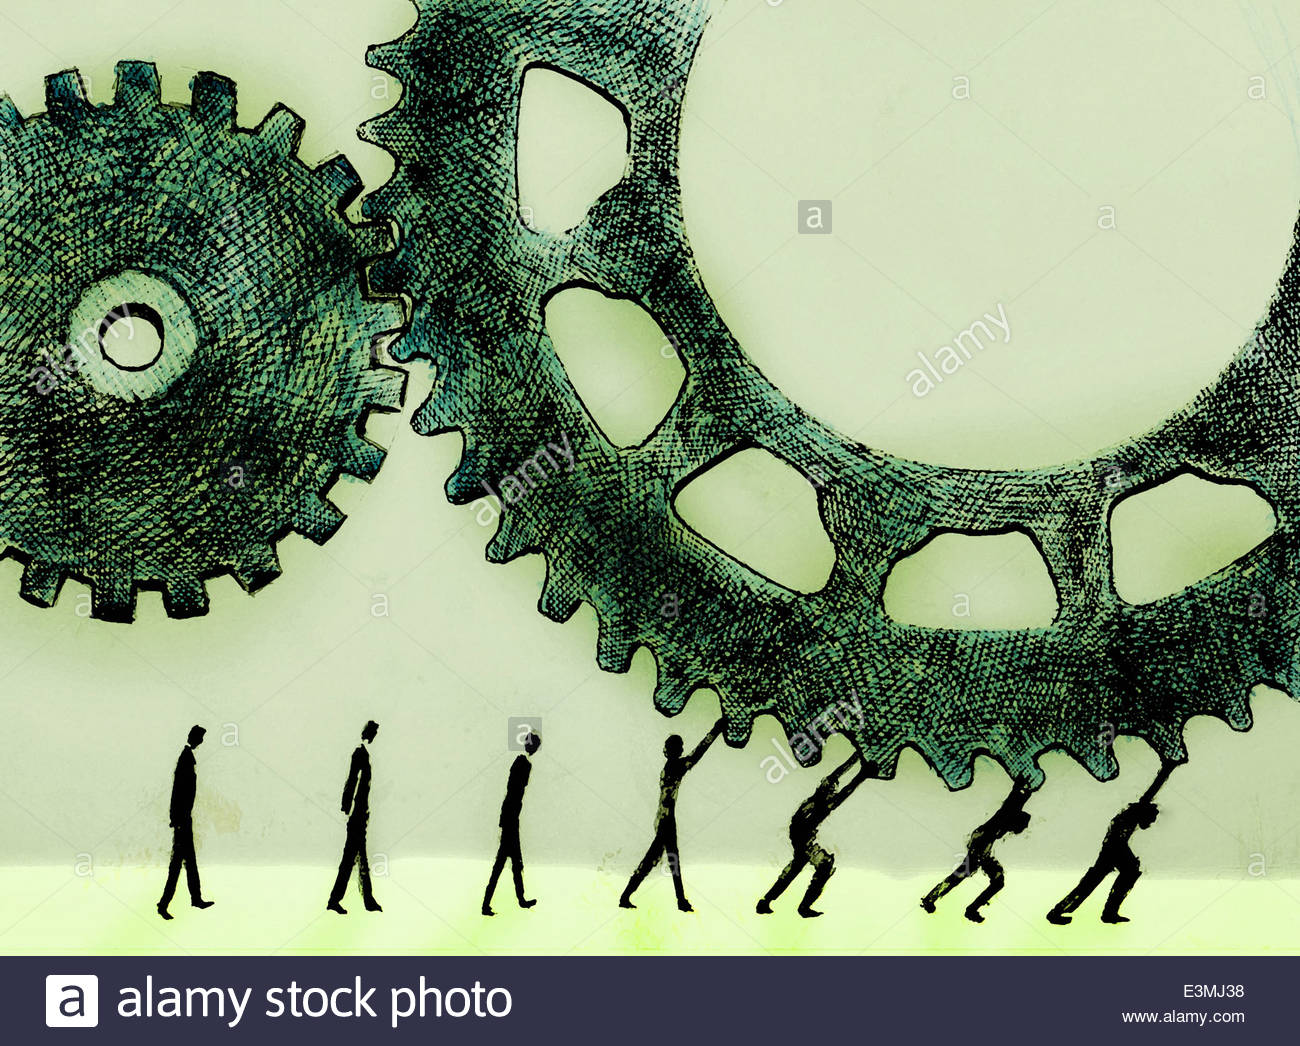 Men lining up to turn cogs - Stock Image